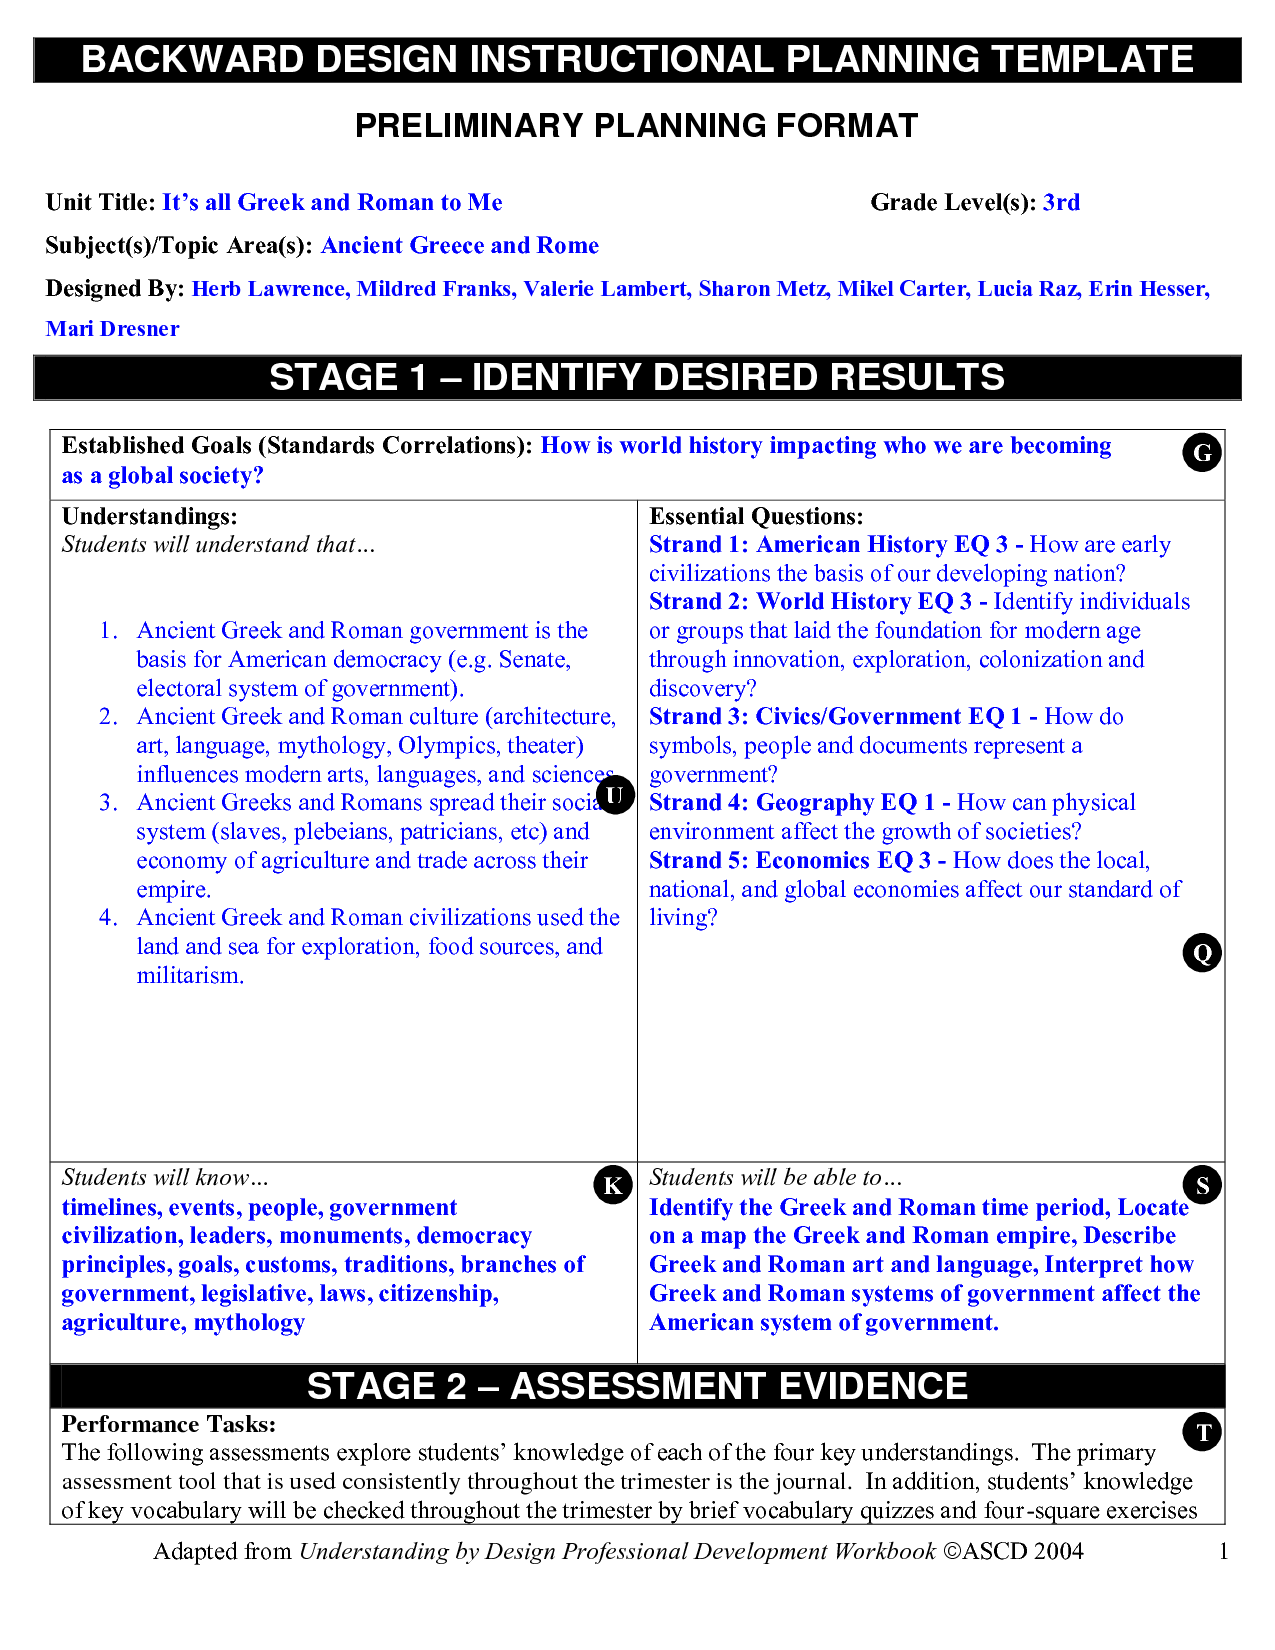 Backward Planning Template Backward Design Instructional Planning Template Download As Do Lesson Plan Templates Instructional Planning Writing Lesson Plans